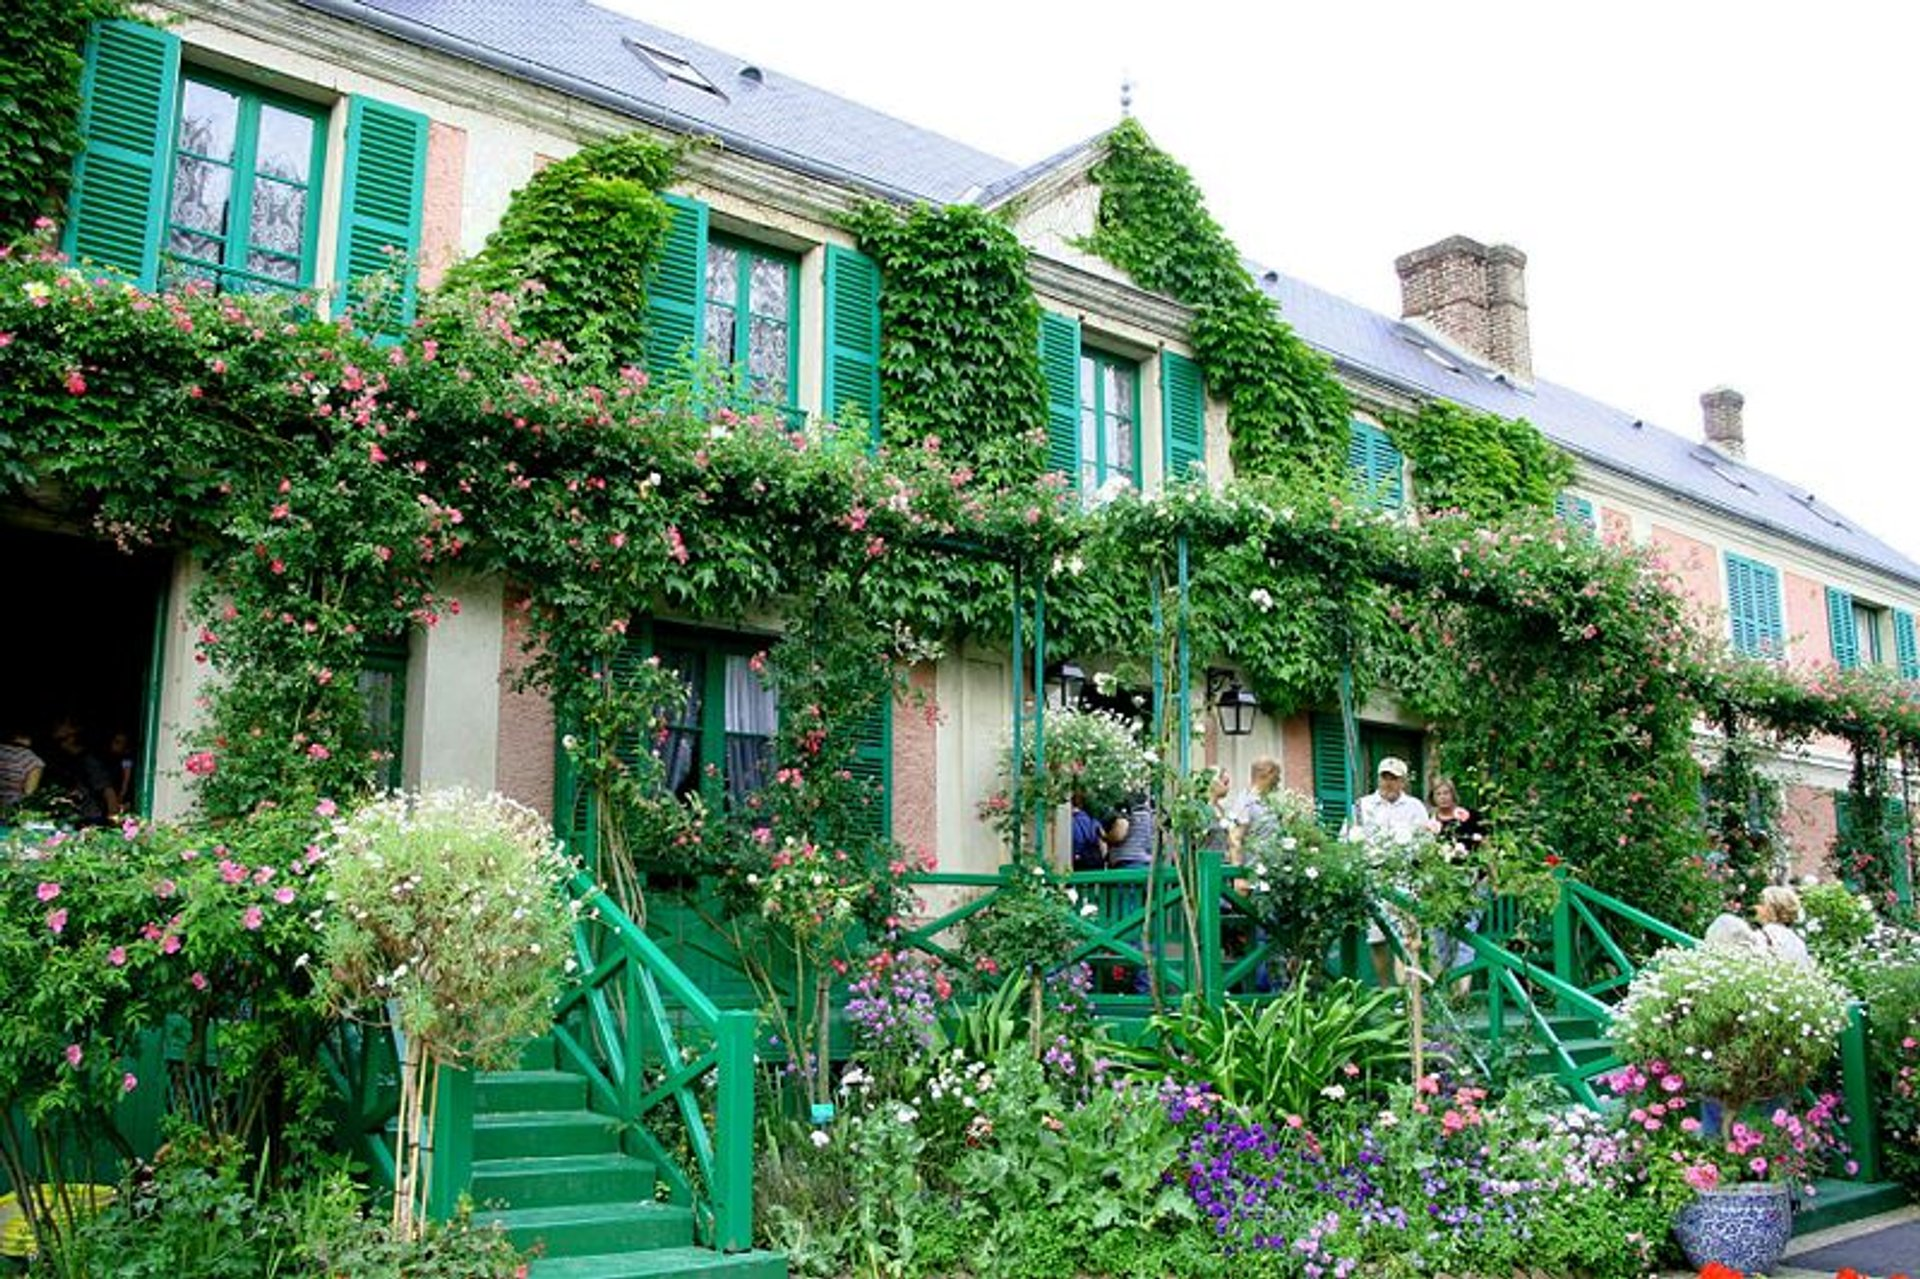 Claude Monet's House & Gardens in Giverny in France 2019 - Best Time